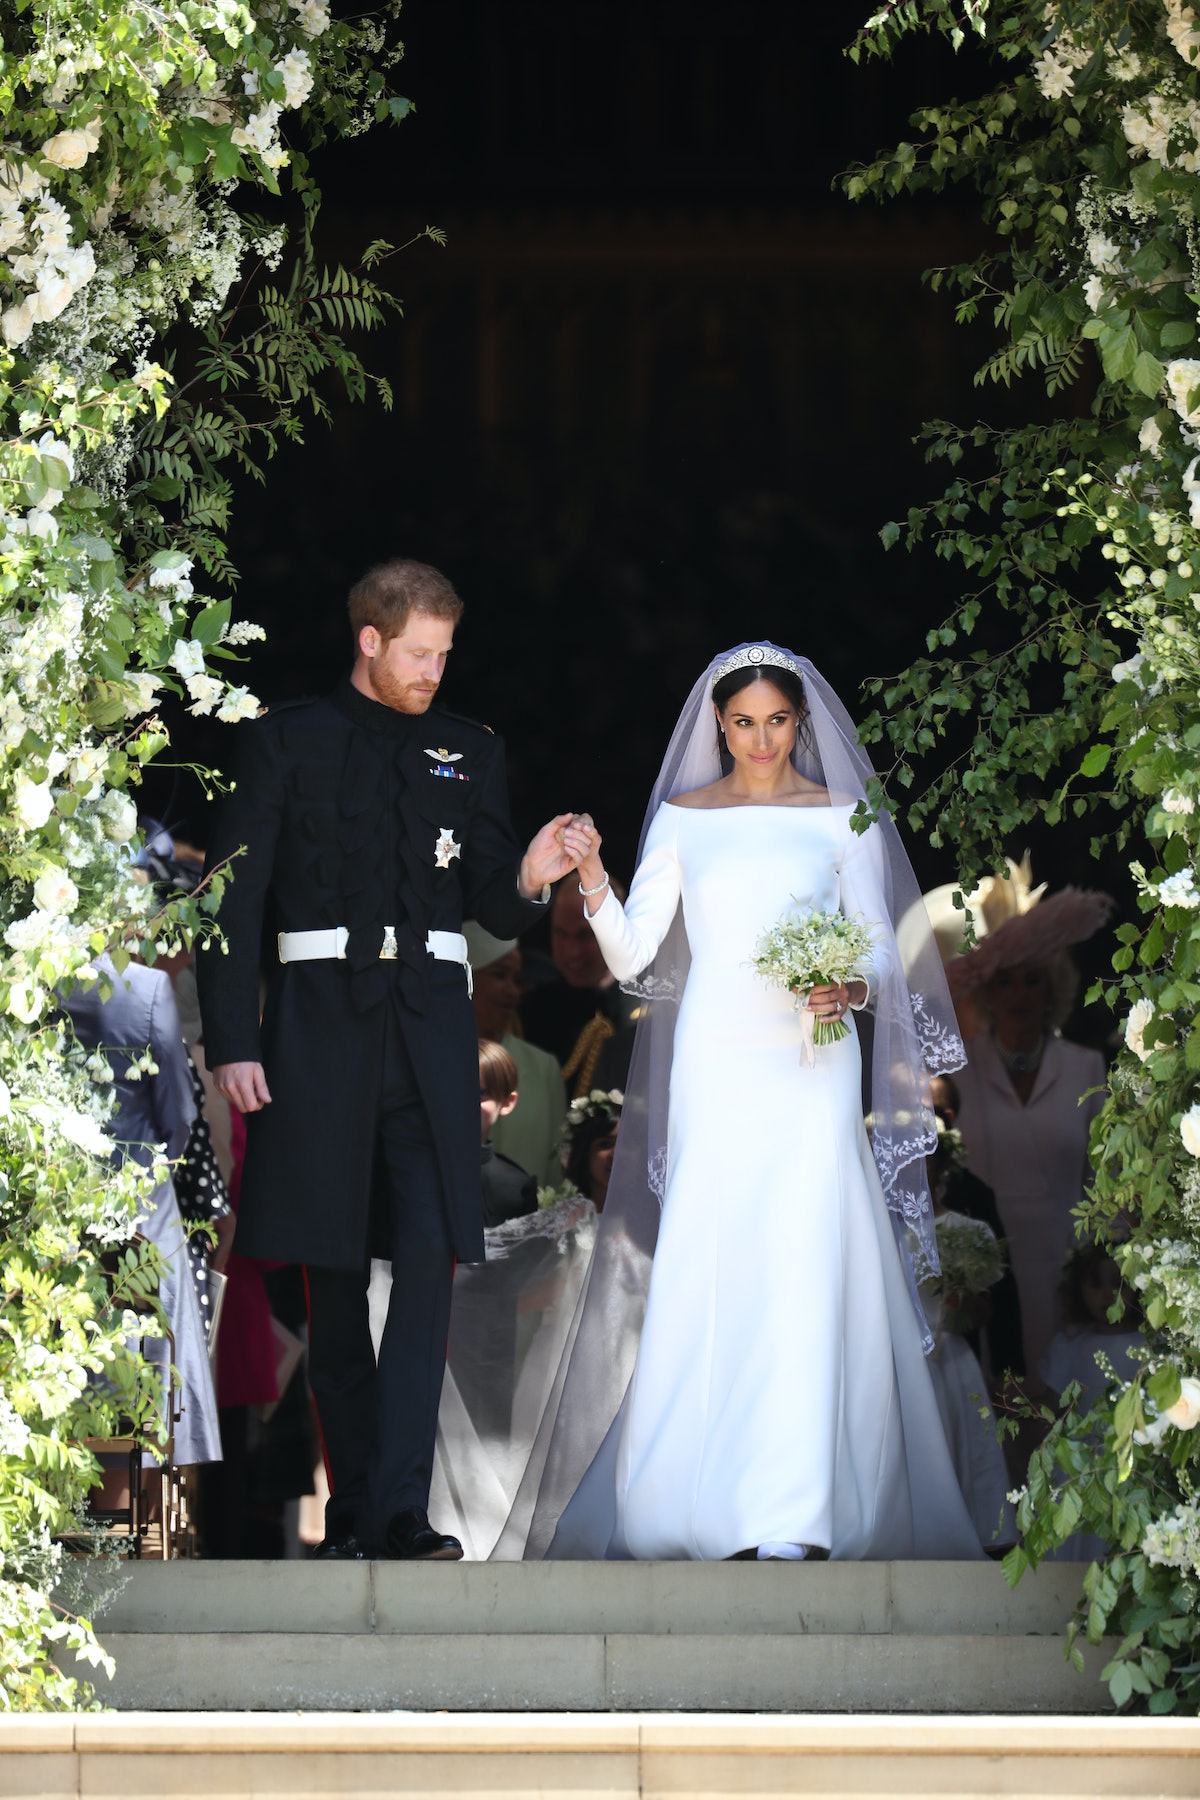 Meghan Markle wore an off-the-shoulder dress Givenchy wedding dress in May 2018.